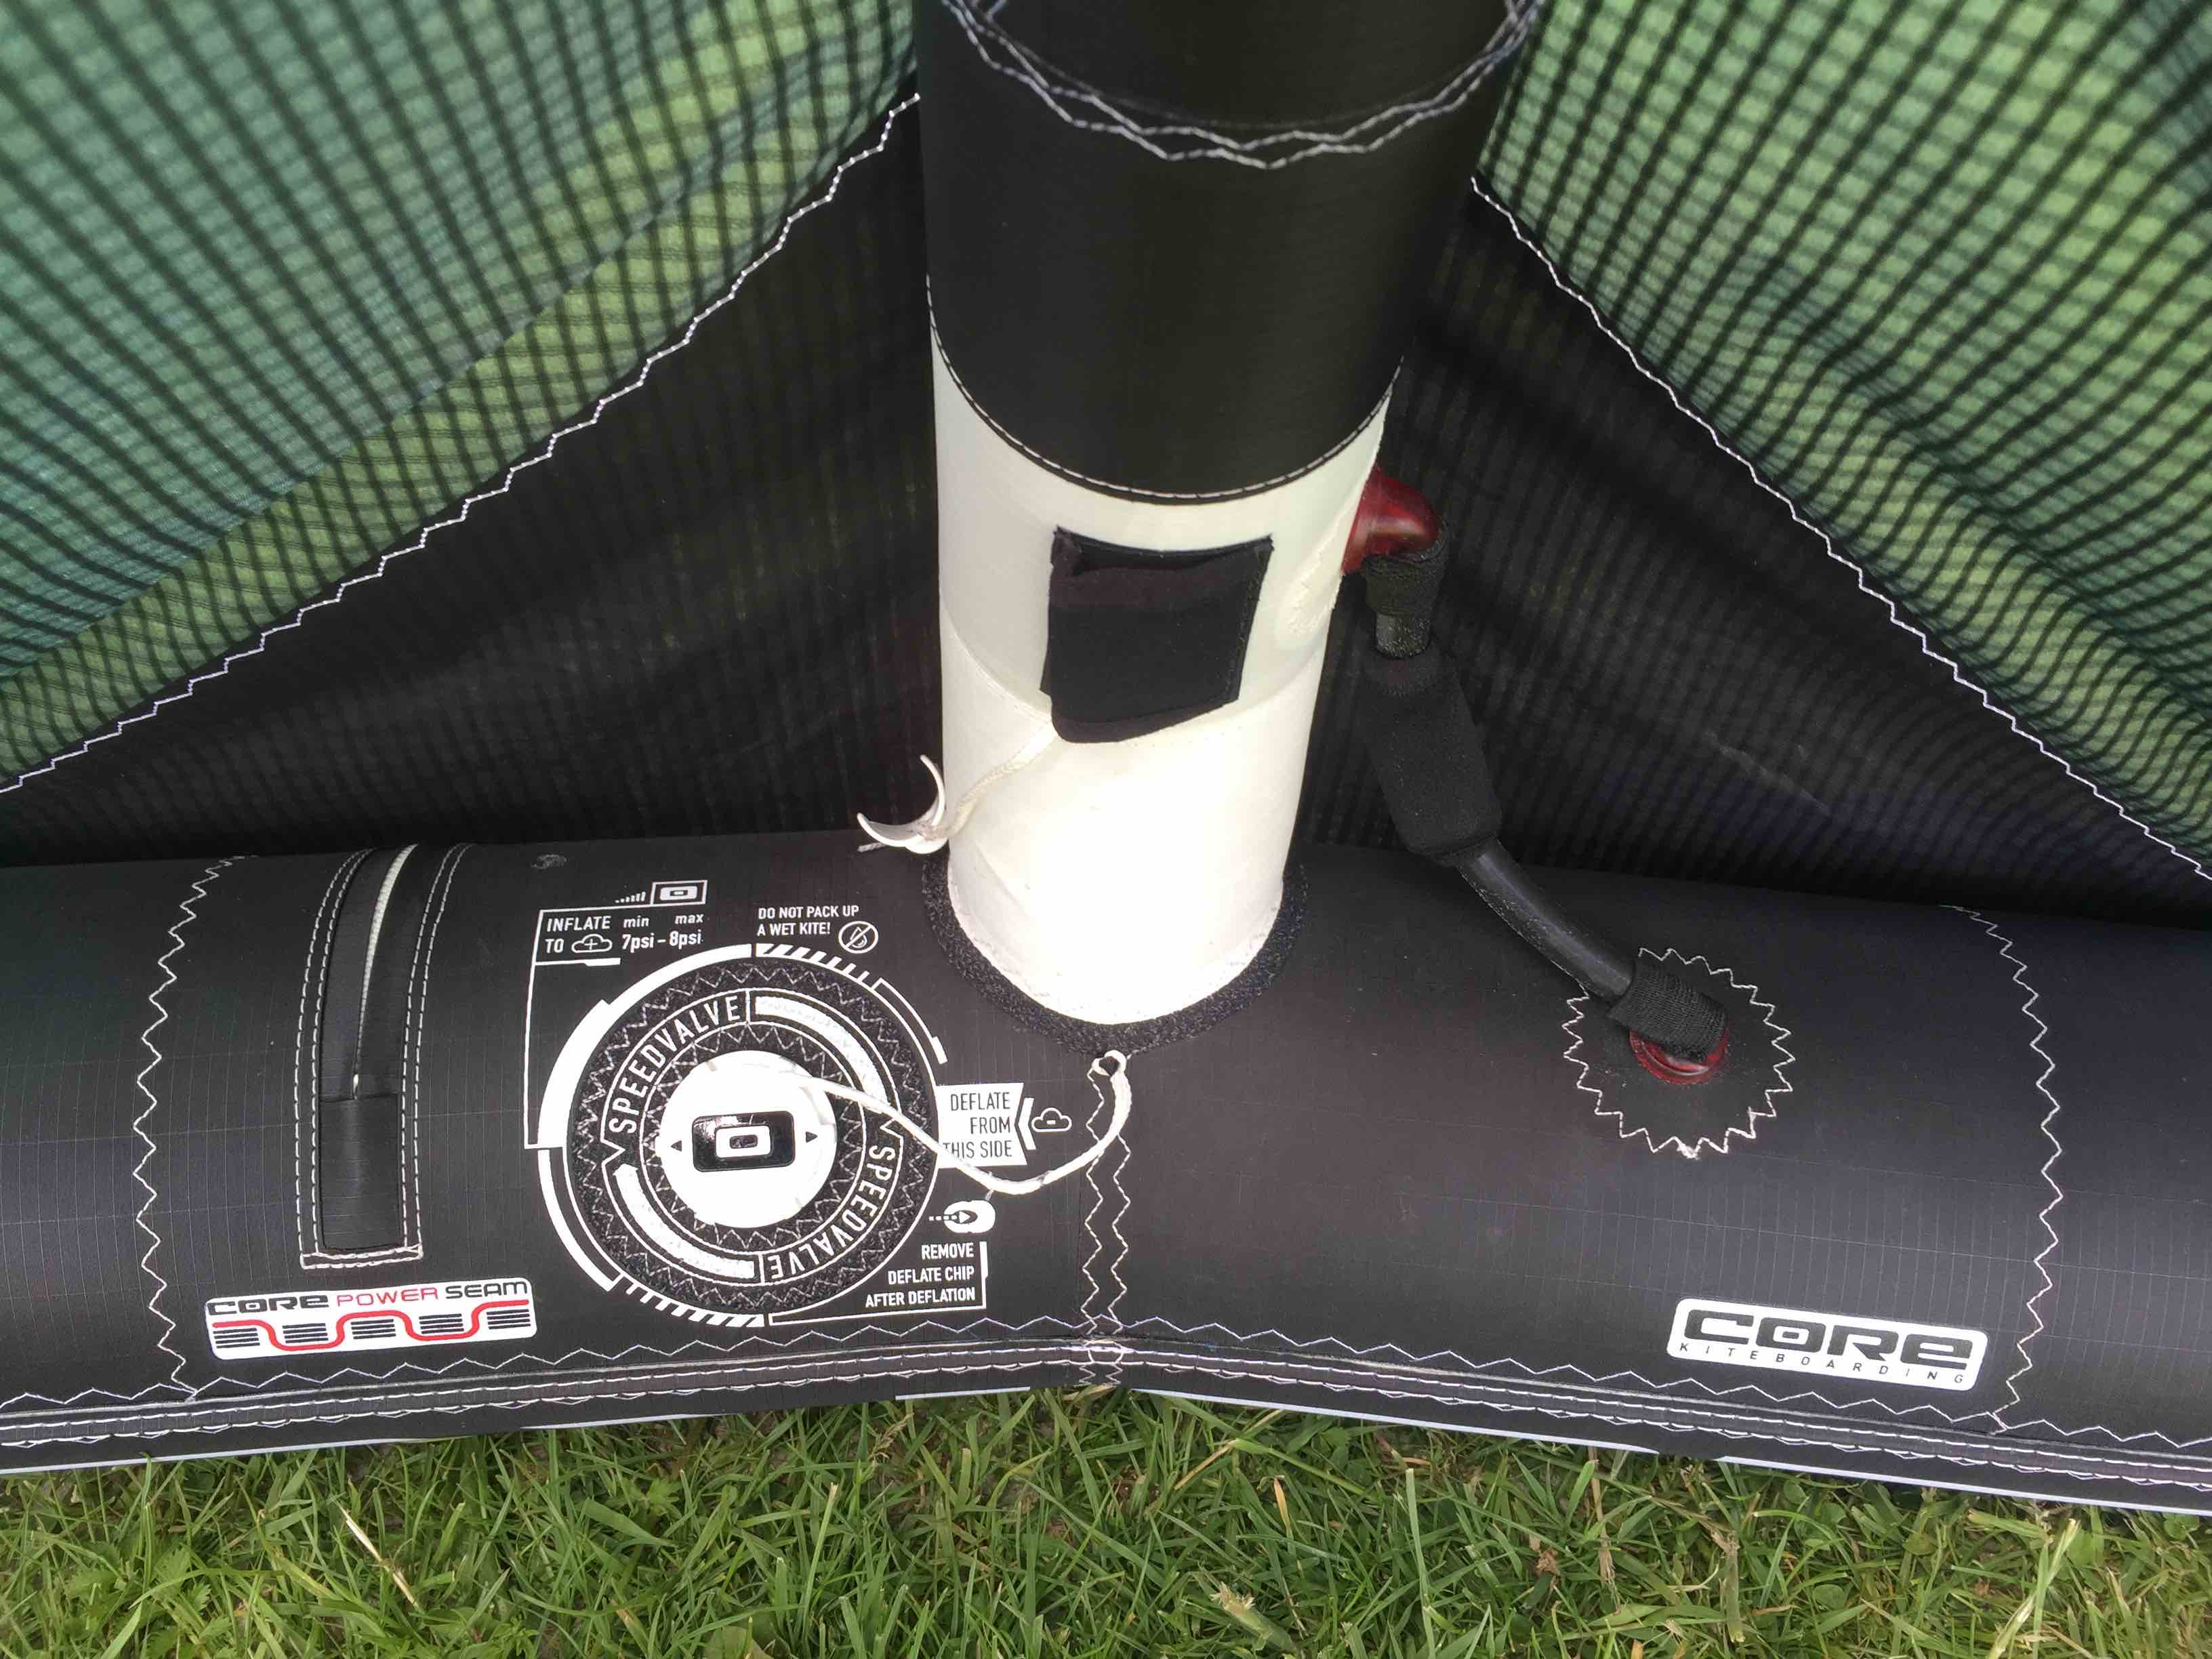 Core Kiteboarding XR4 10m kitereview inflate